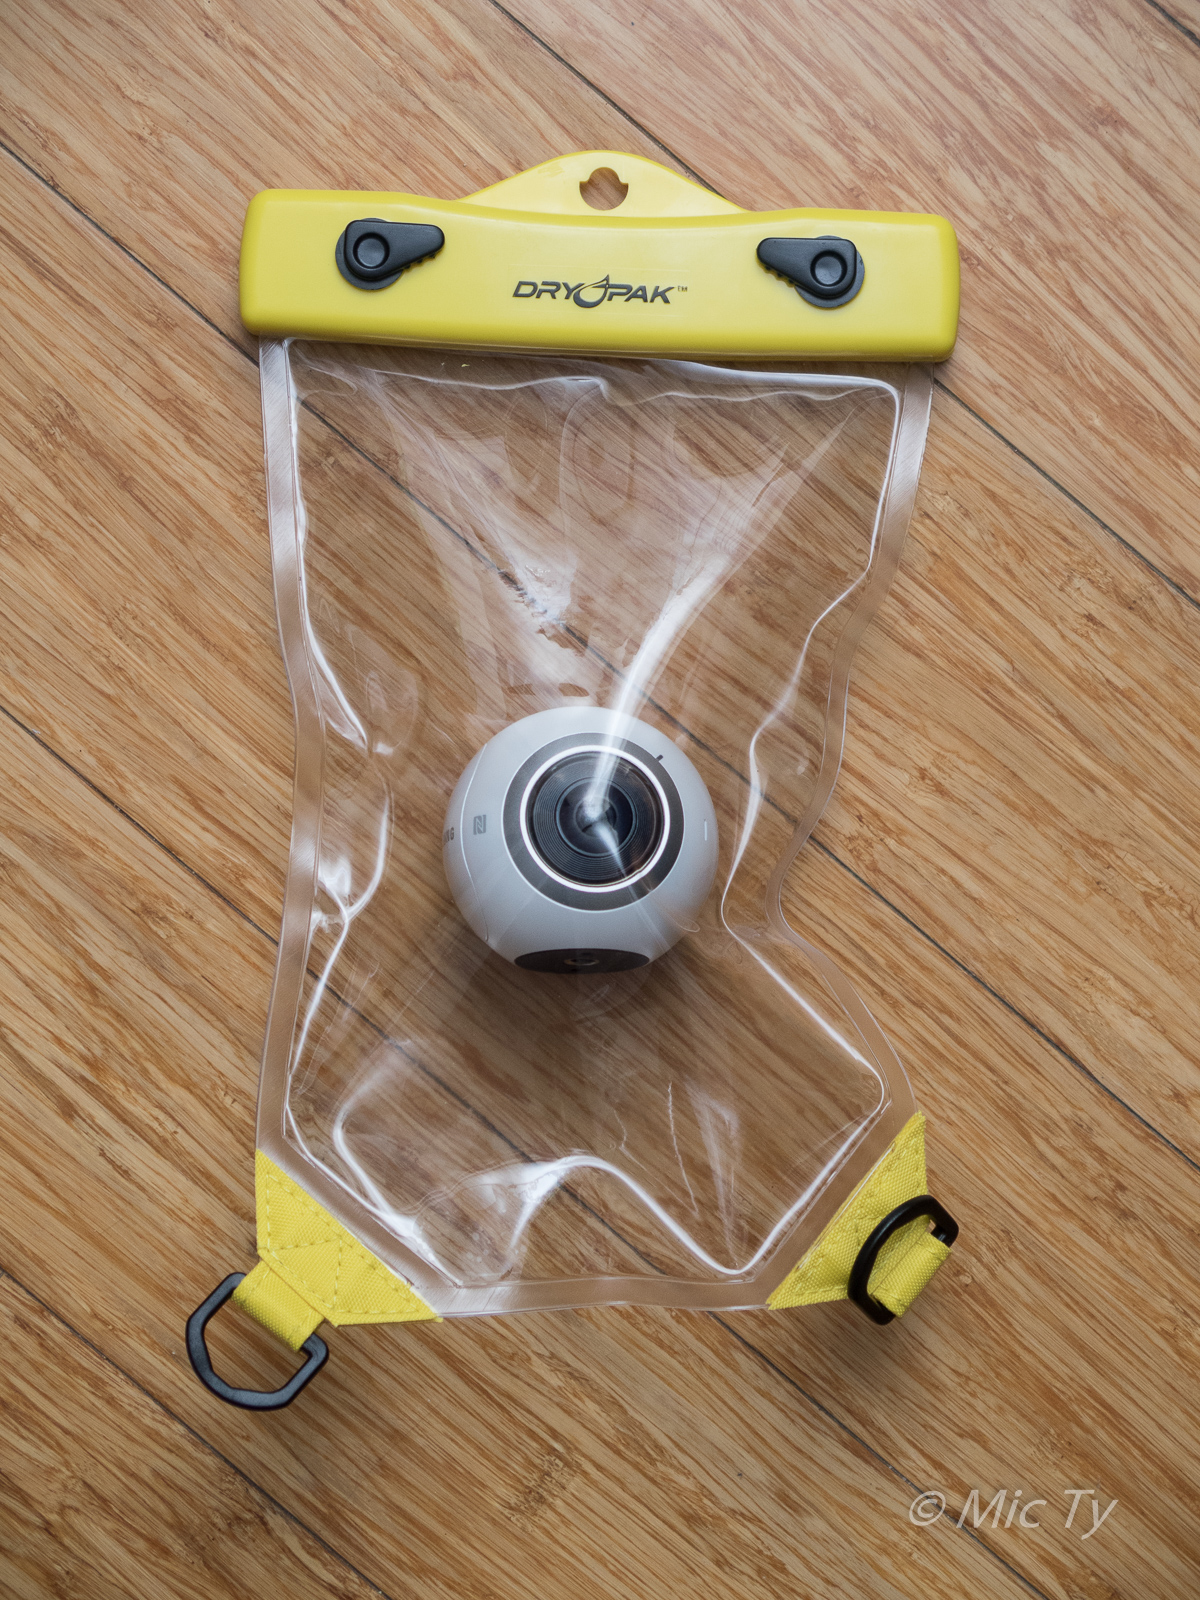 Waterproof case for the samsung gear 360 and other 360 cameras